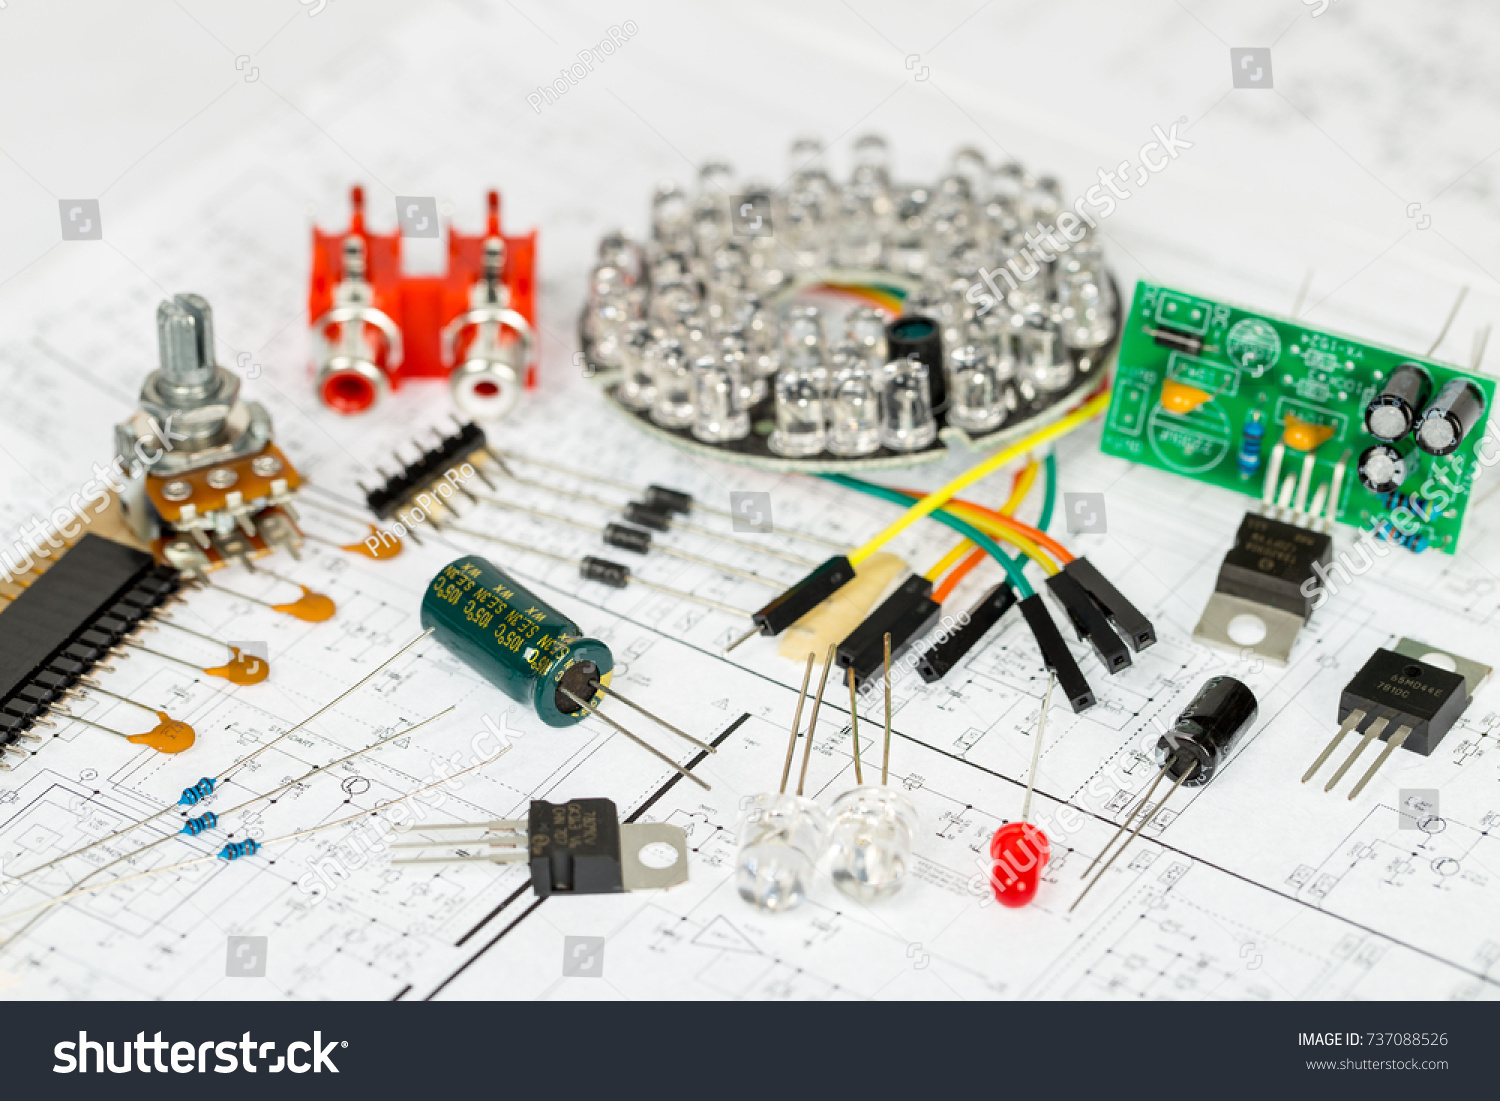 Electronic Components Over Diagram Printed Stock Photo Transistor Led Circuit Wiring Transistors Integrated Circuits Capacitors